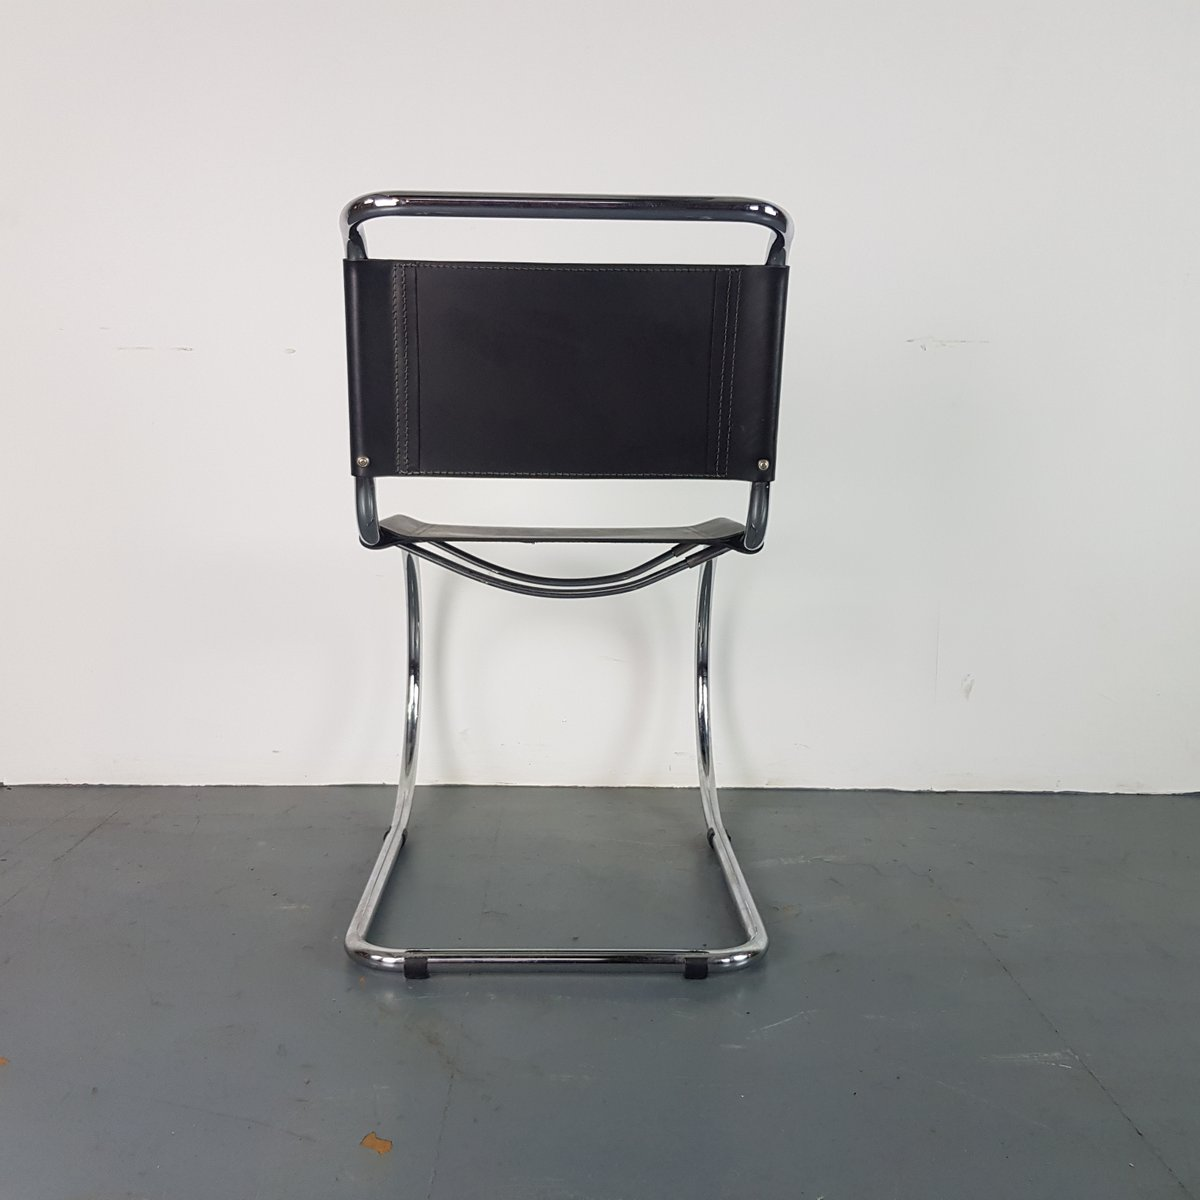 leather chrome chair amazon covers for weddings mid century black by ludwig mies van der rohe price per piece